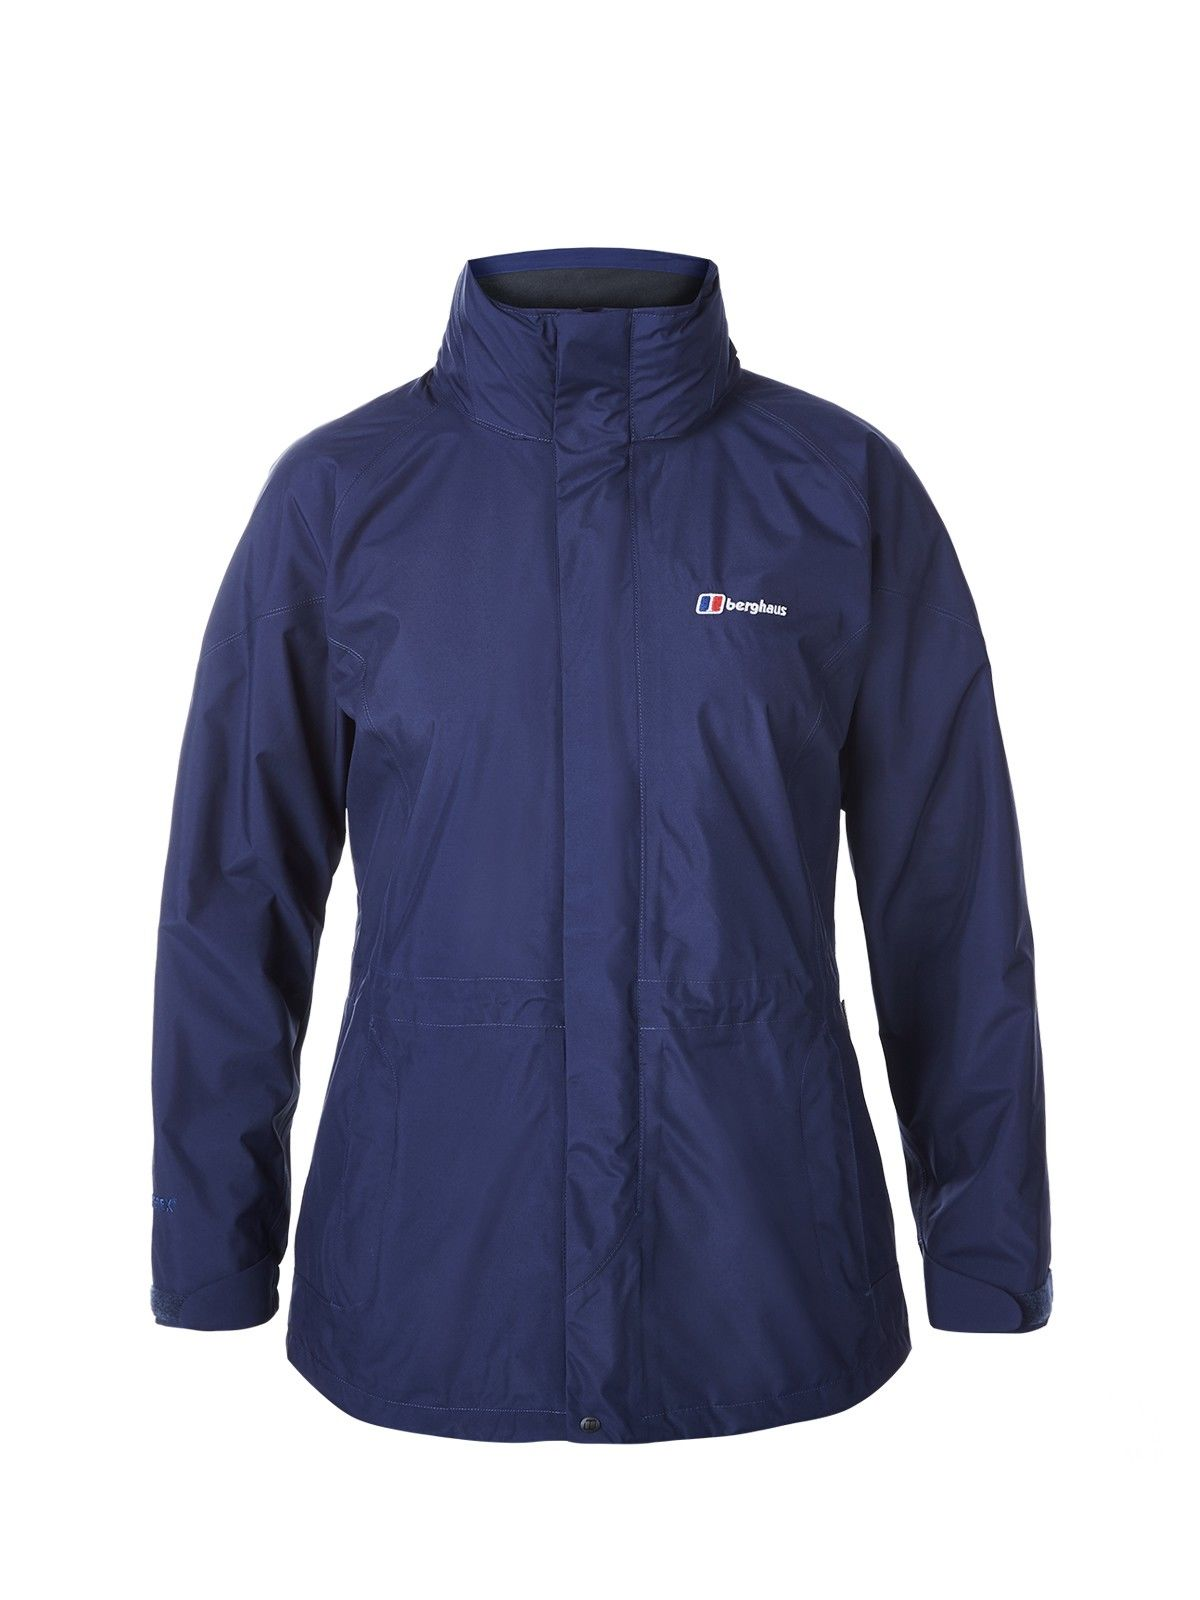 Berghaus Glissade Jacket IA Blau, Female Gore-Tex® Isolationsjacke, XXXL -20